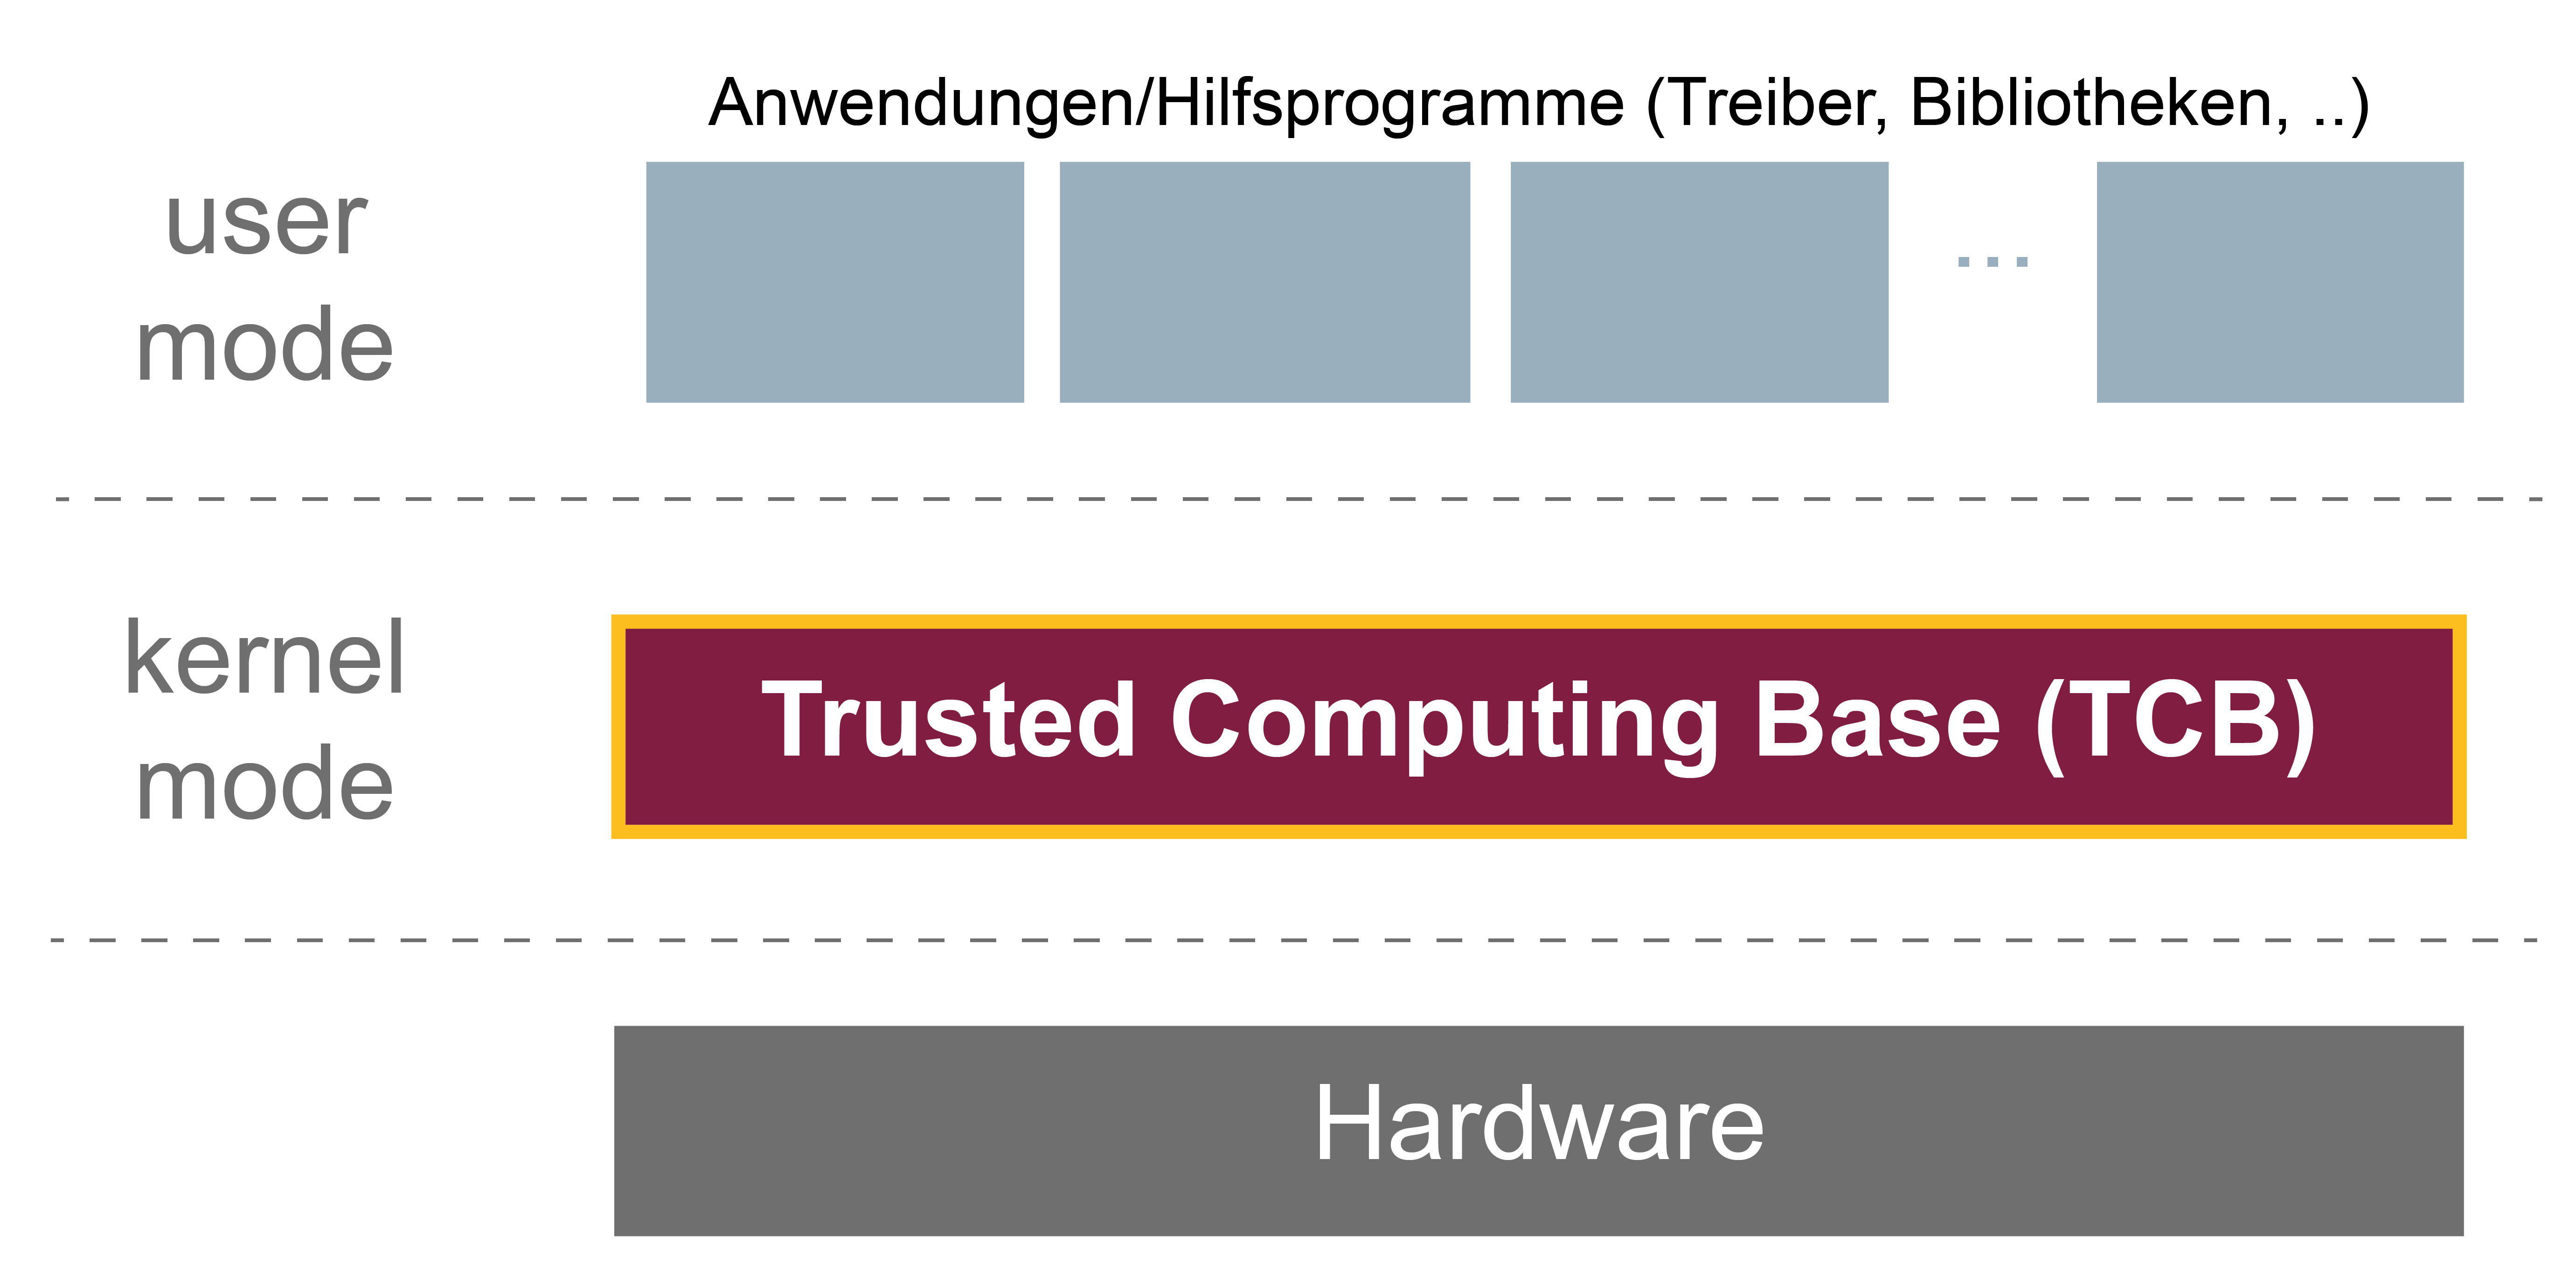 Trusted Computing Base (TCB) - Glossar Cyber-Sicherheit - Prof. Norbert Pohlmann